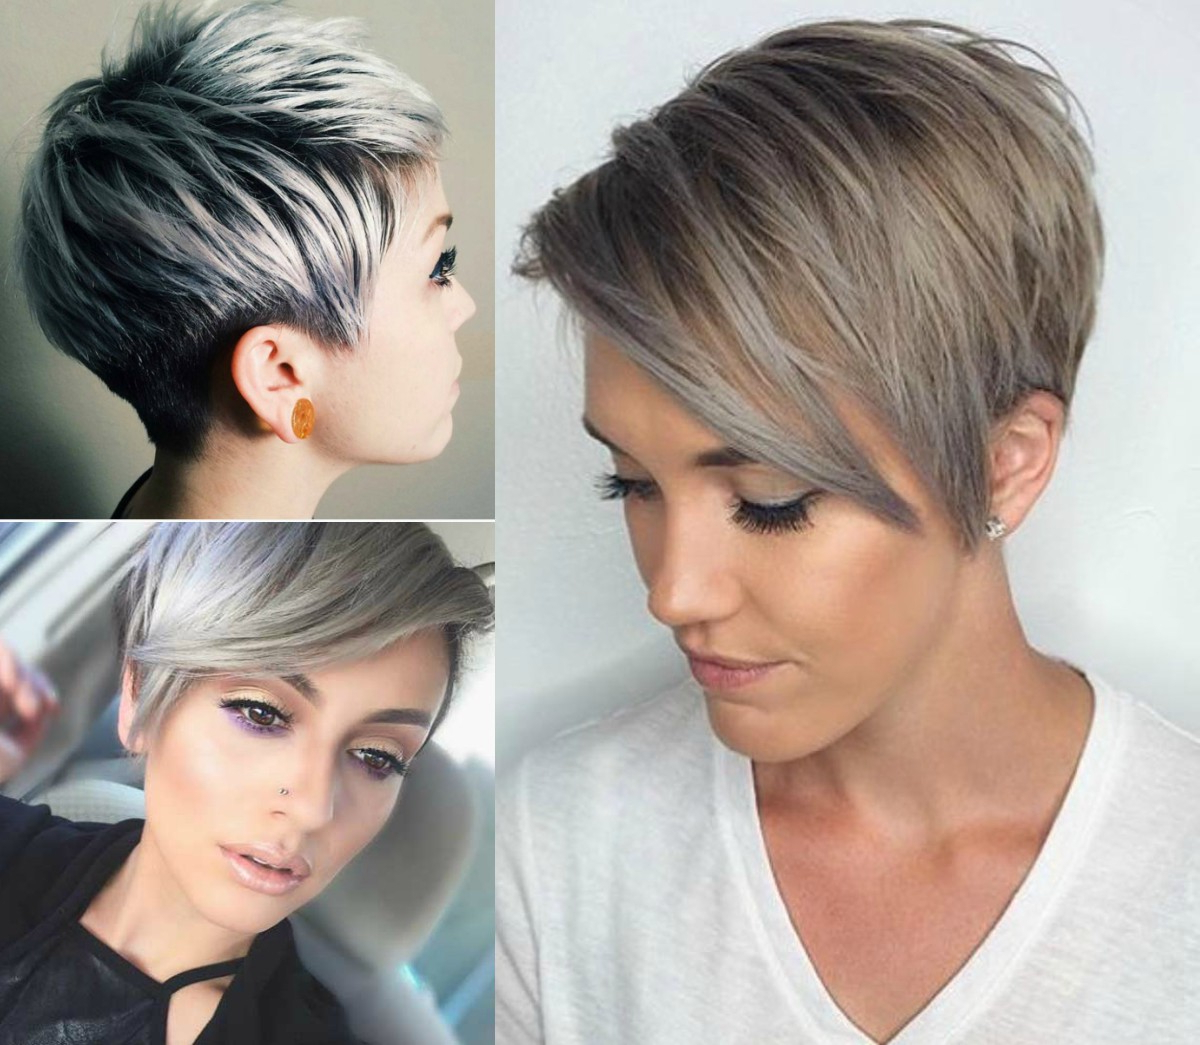 Winter Fit: Extravagant Silver Pixie Haircuts | Hairdrome With Regard To Silver Pixie Hairstyles For Fine Hair (View 20 of 20)